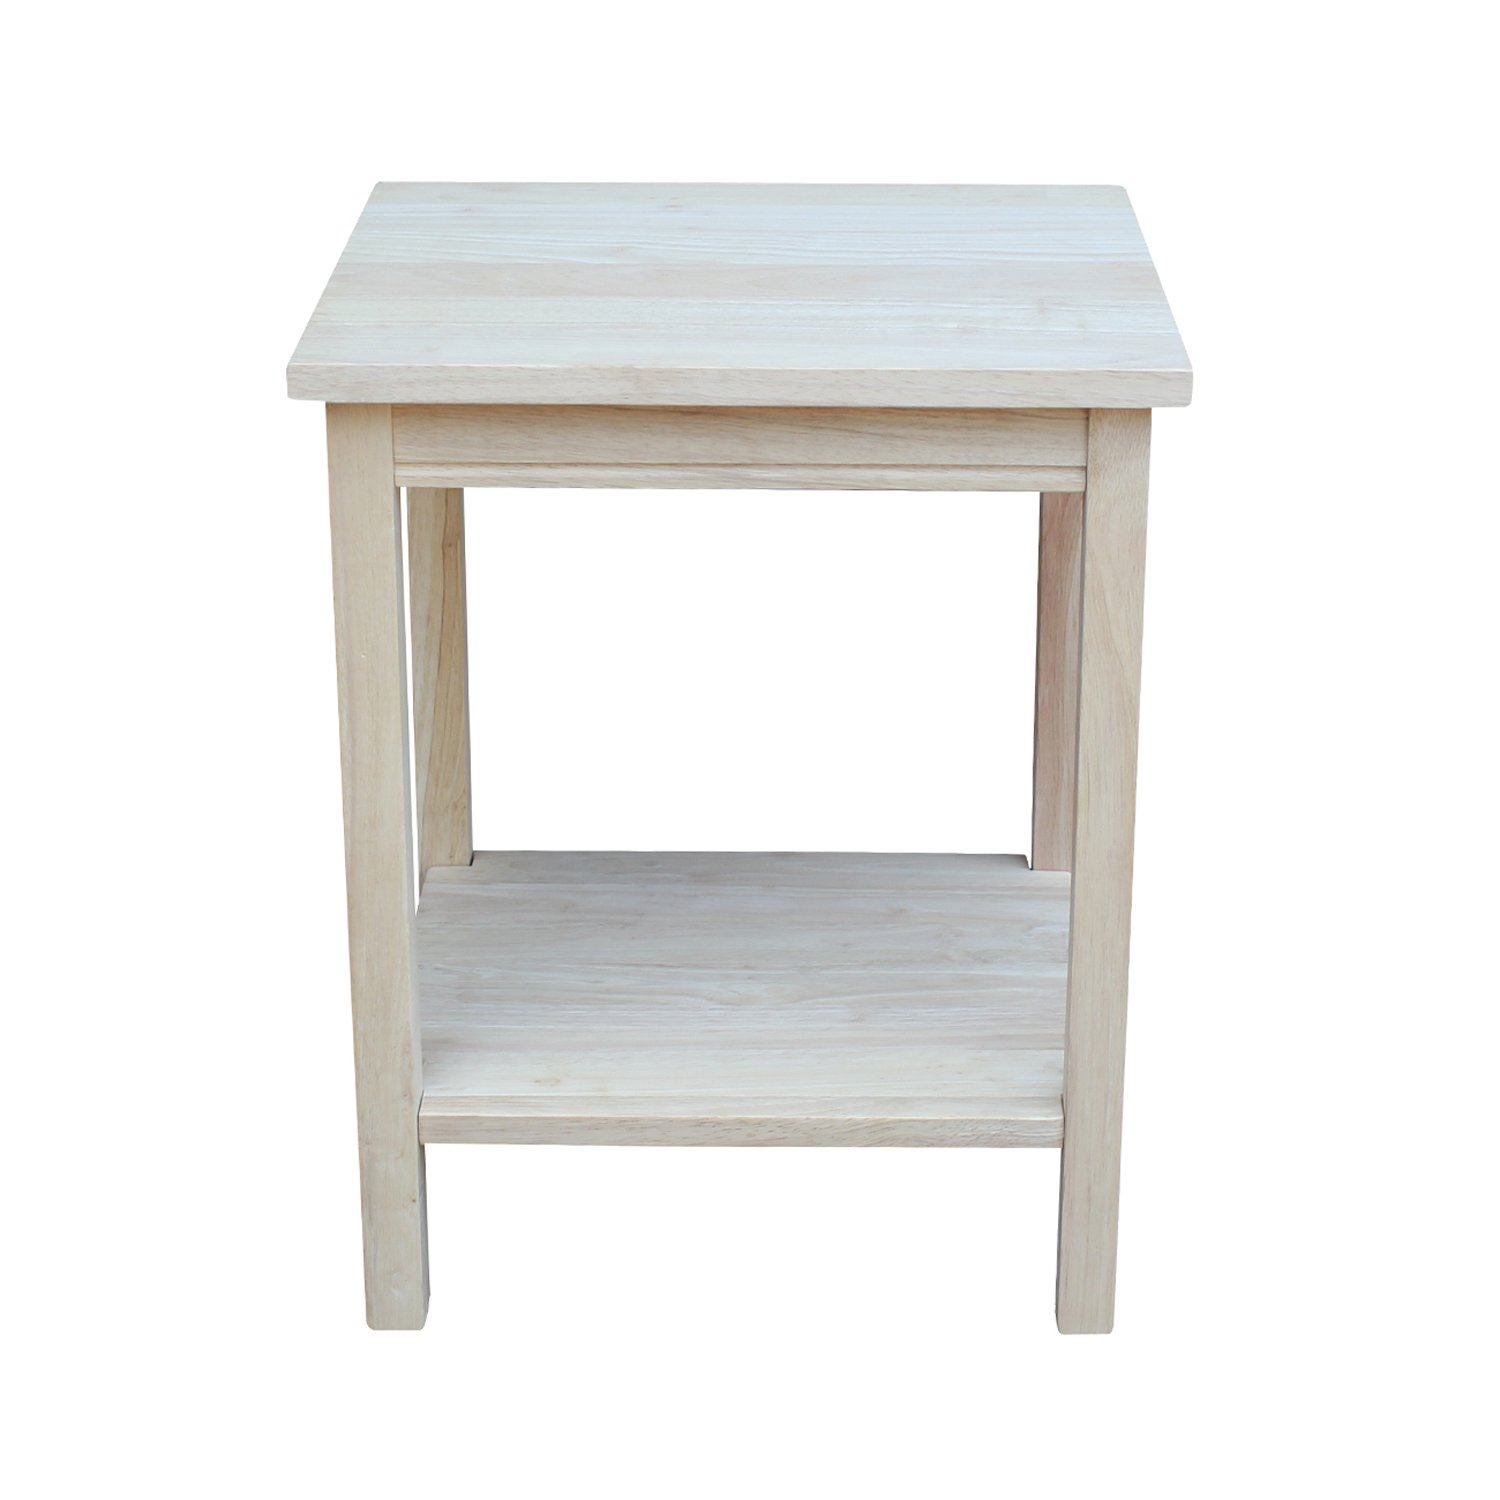 Amazoncom International Concepts OT041 Accent Table Unfinished